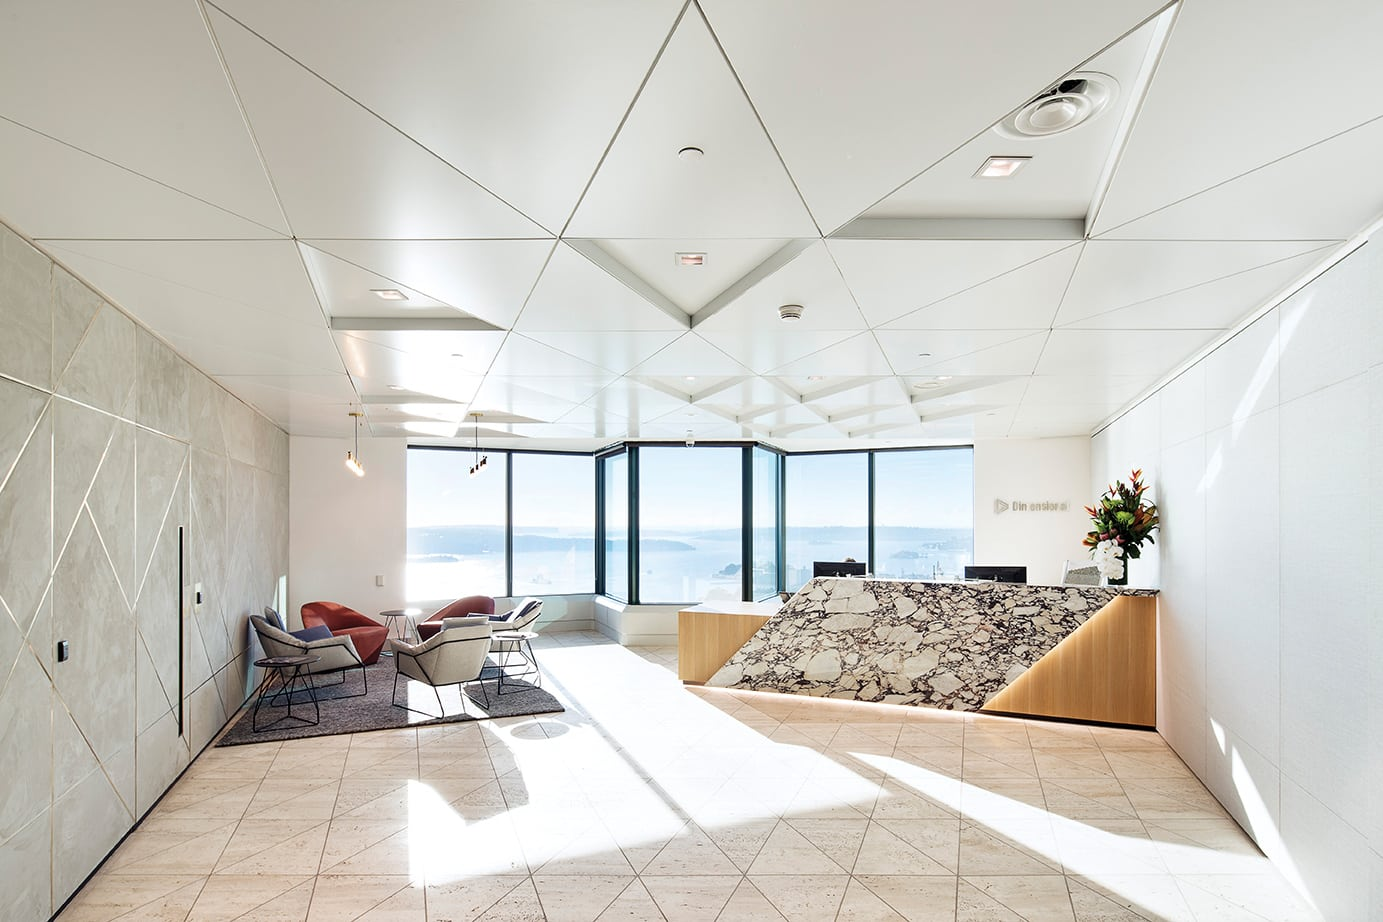 Dimensional Funds Australia - Fitout completed by Formula